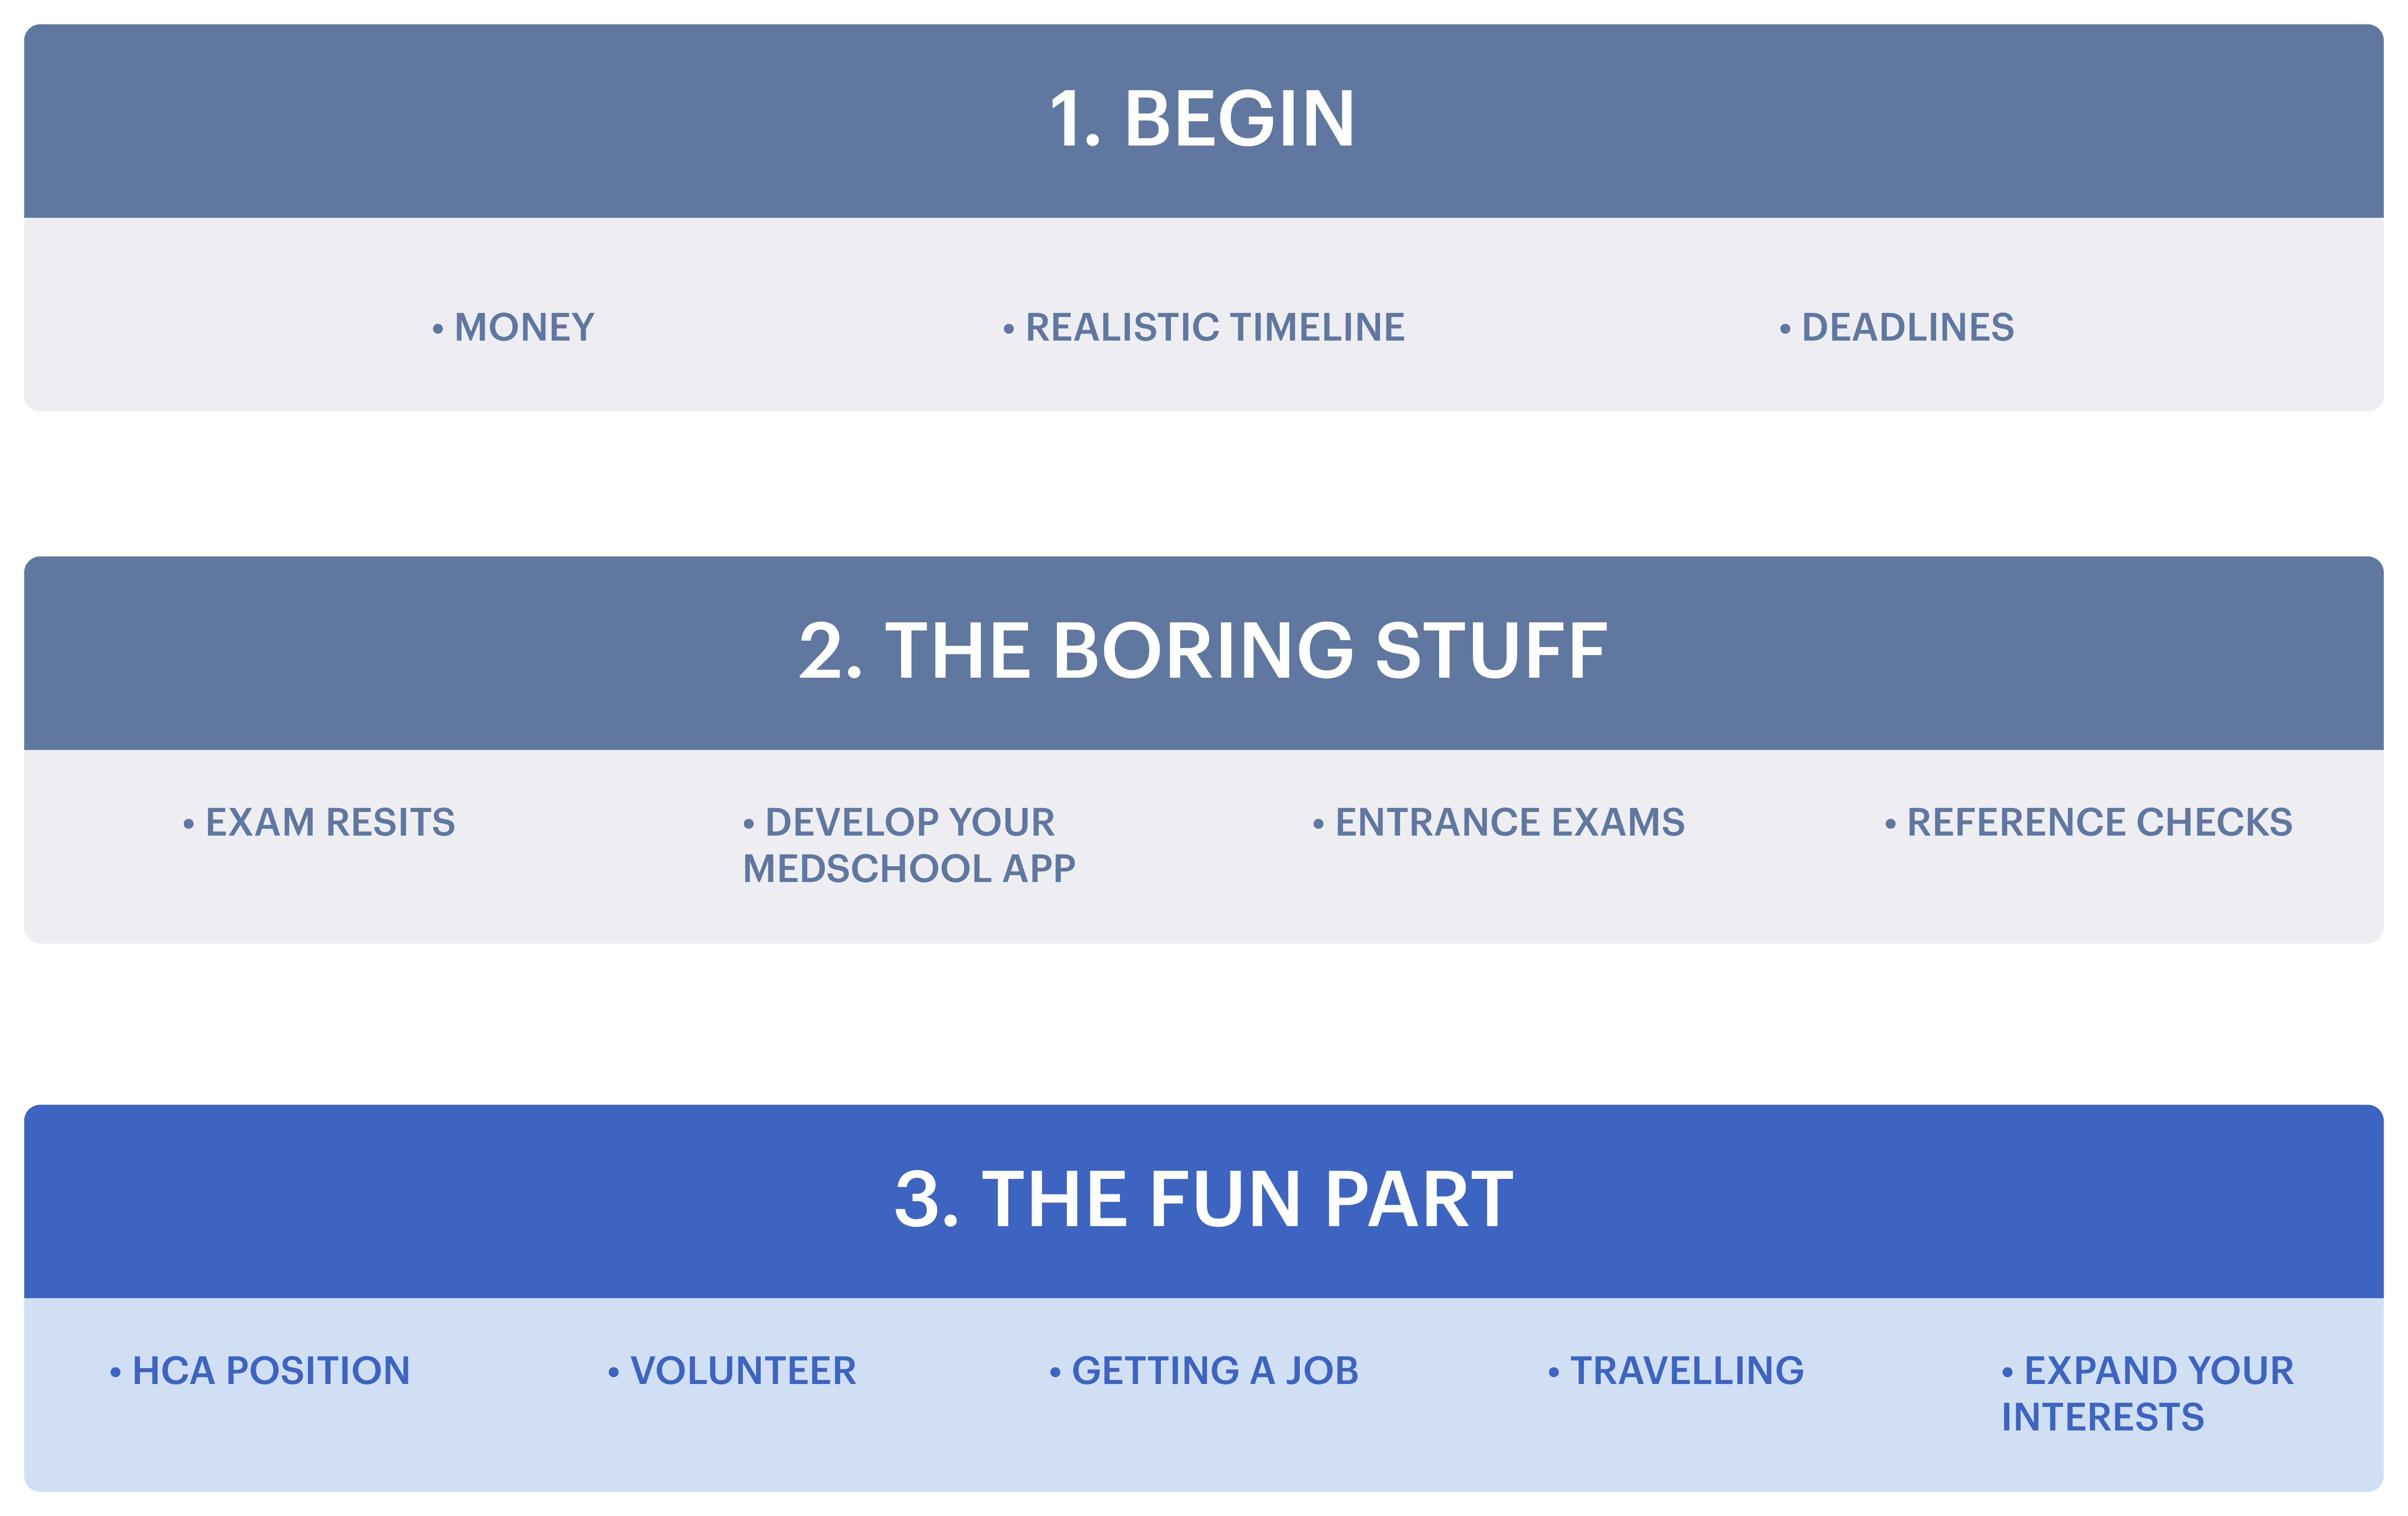 Step 3 The Fun Part: HCA position, Volunteer, Getting a job, Travelling, Expand your interests